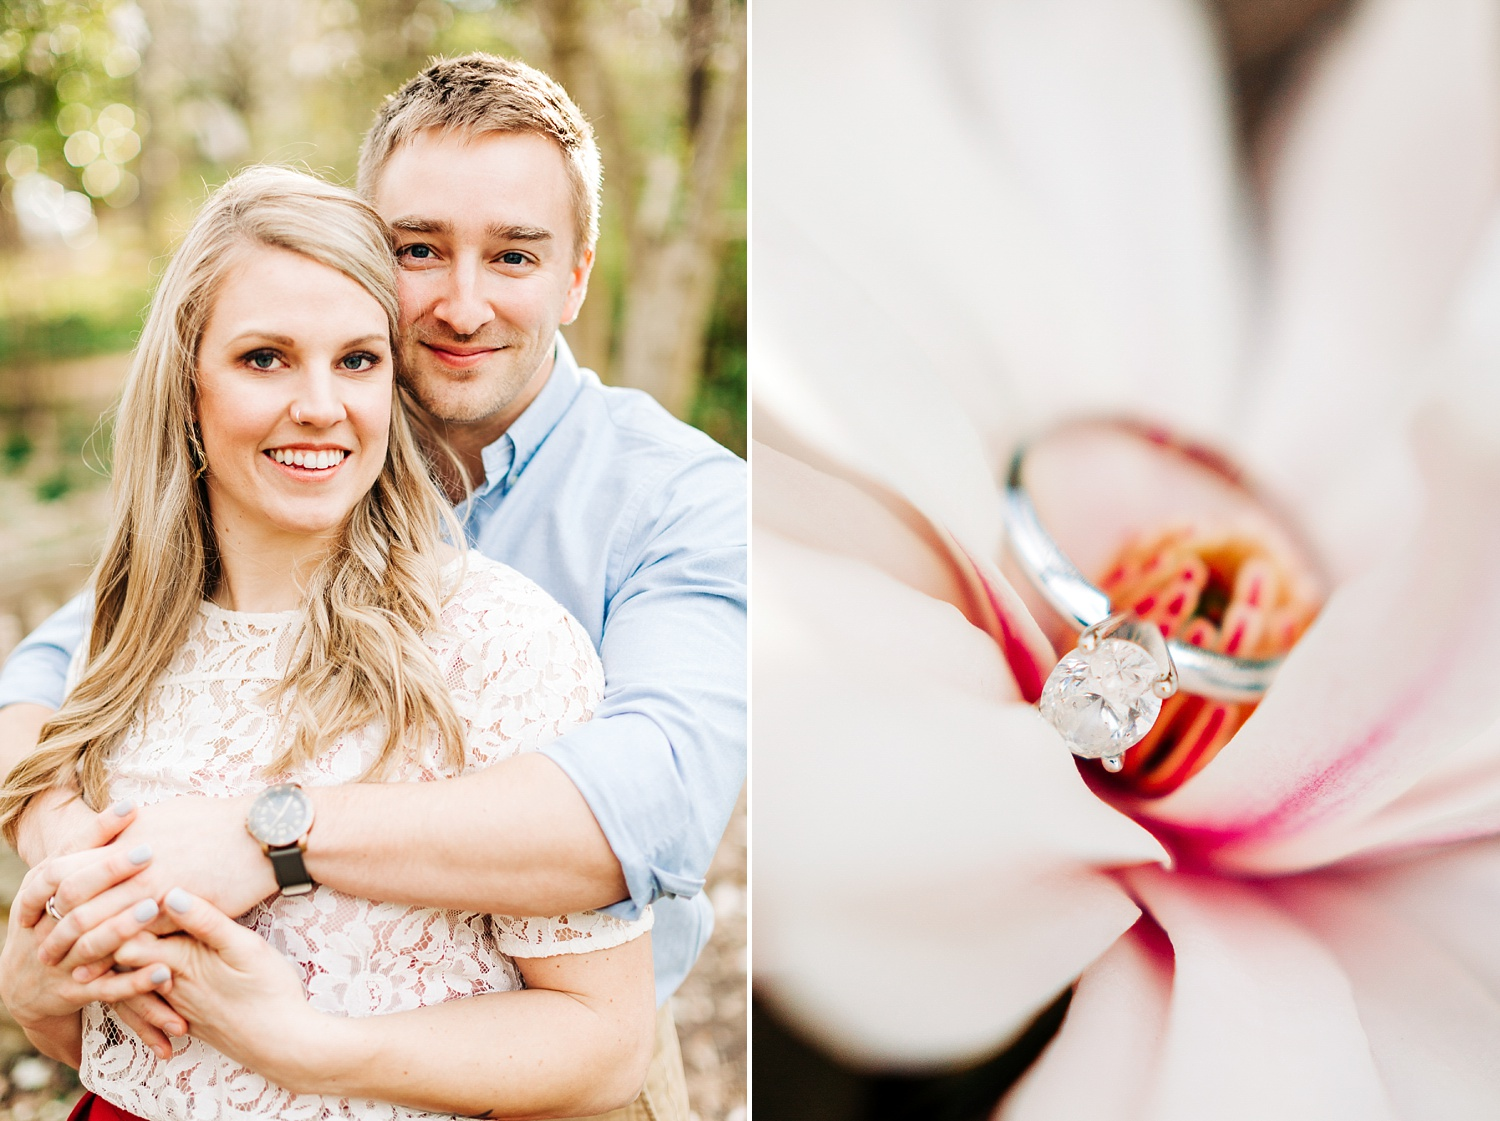 engagement session at coker arboretum in chapel hill, nc